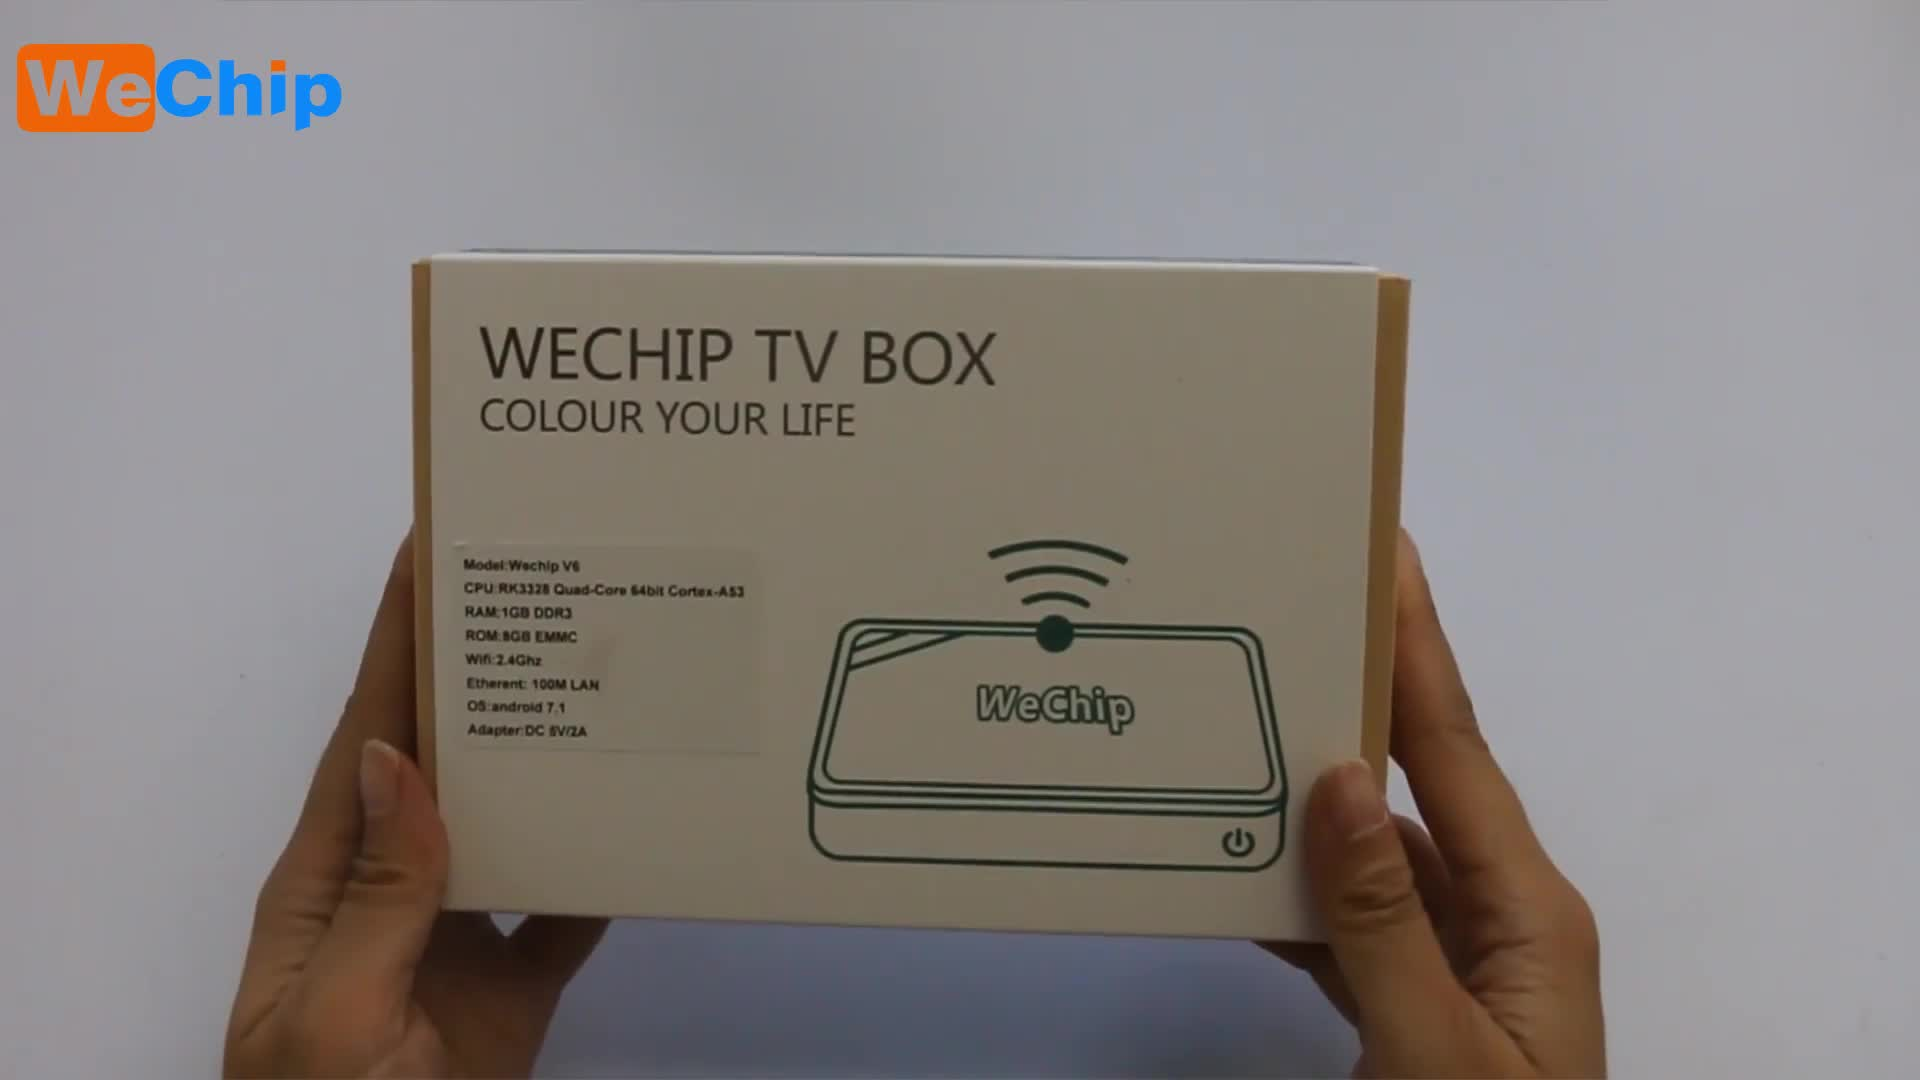 OS updated to android 8.1 Internet tv box Wechip v6 with RK3328 Ethernet 10/100 WiFi 2.4G KD17.1 64 bit set top box